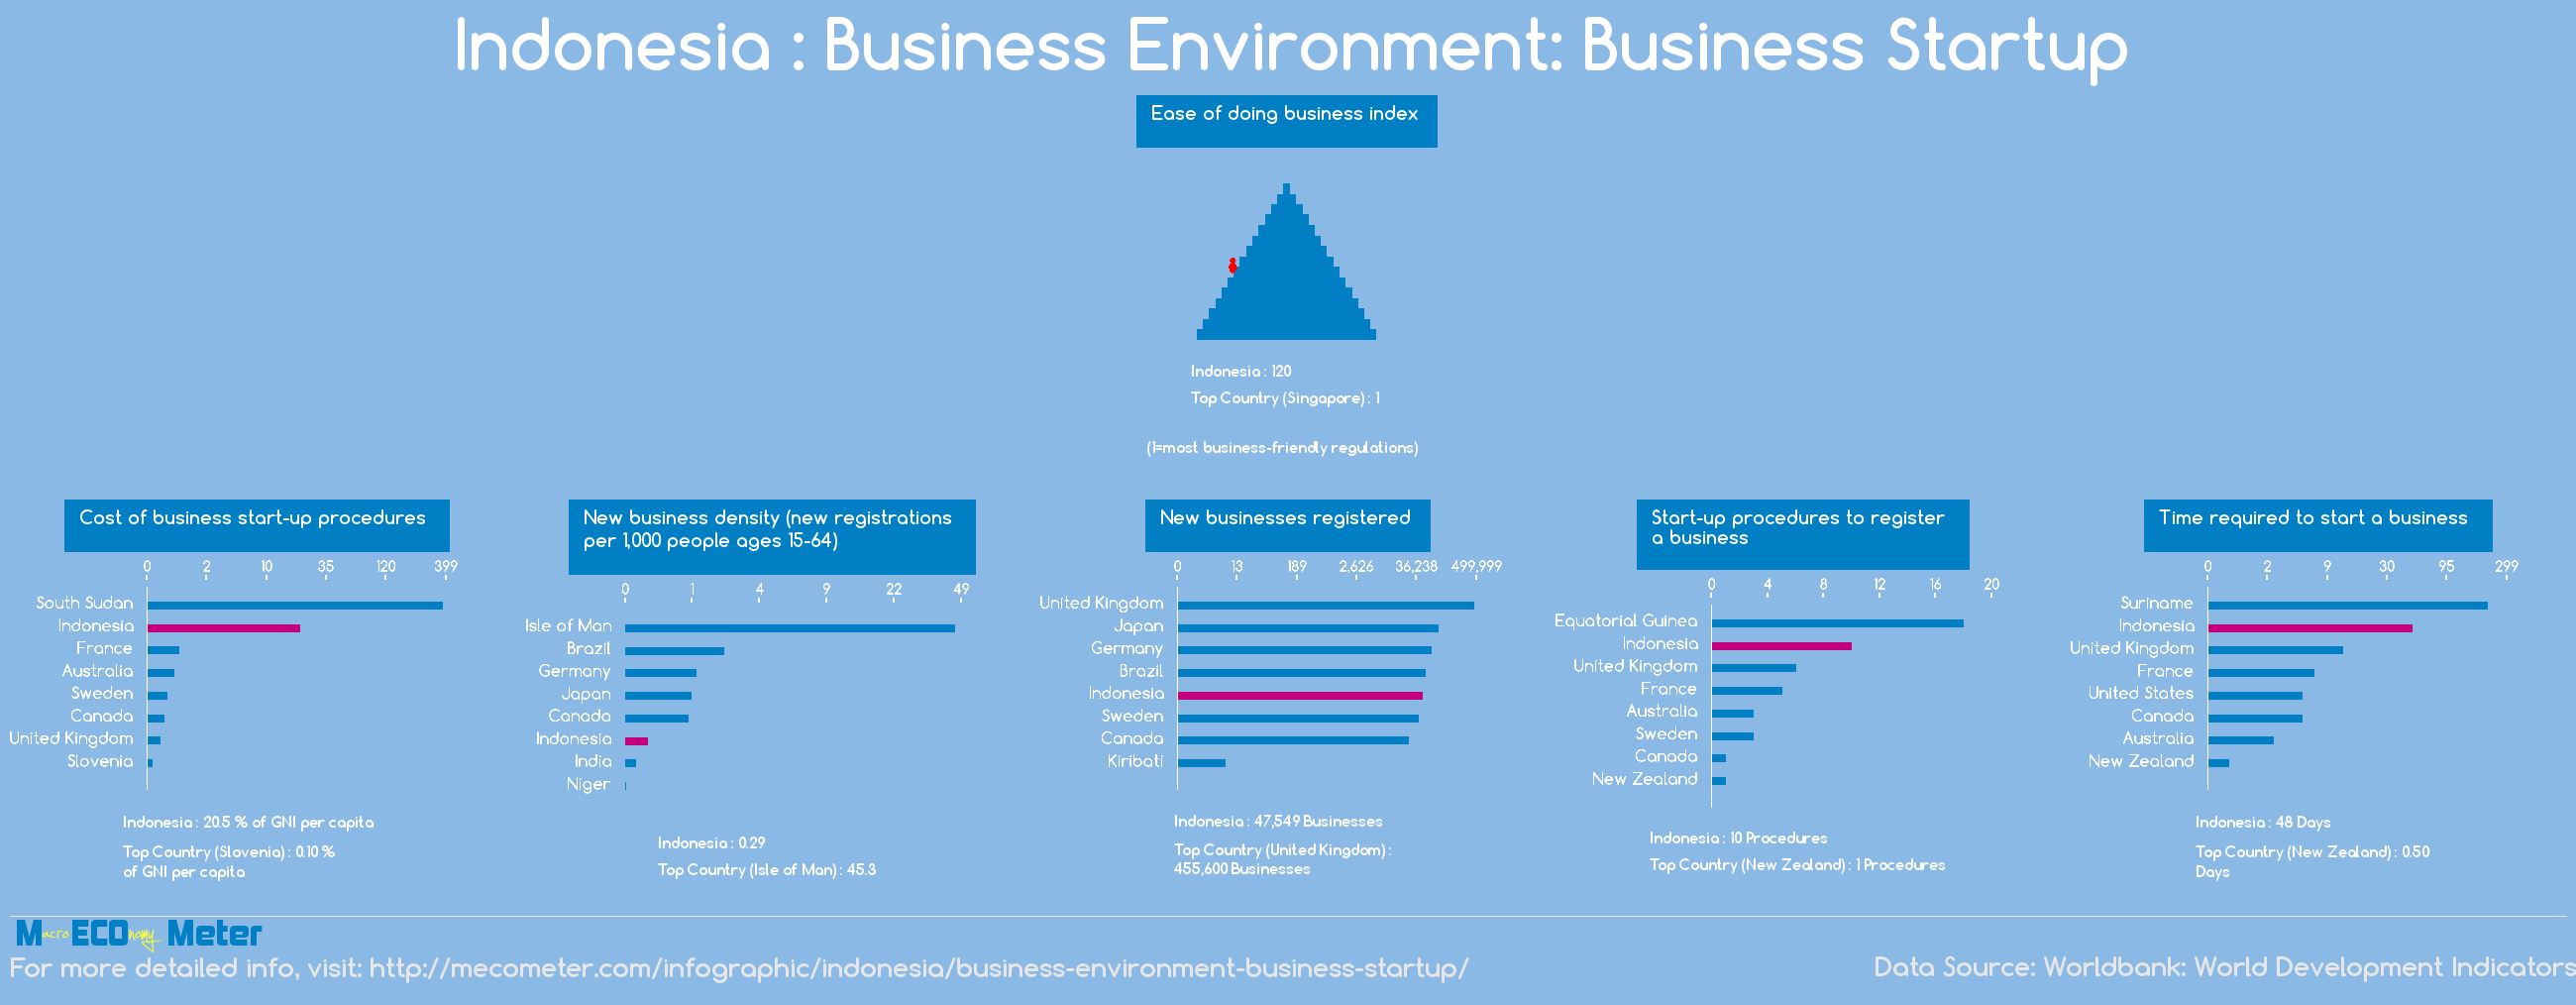 Indonesia : Business Environment: Business Startup